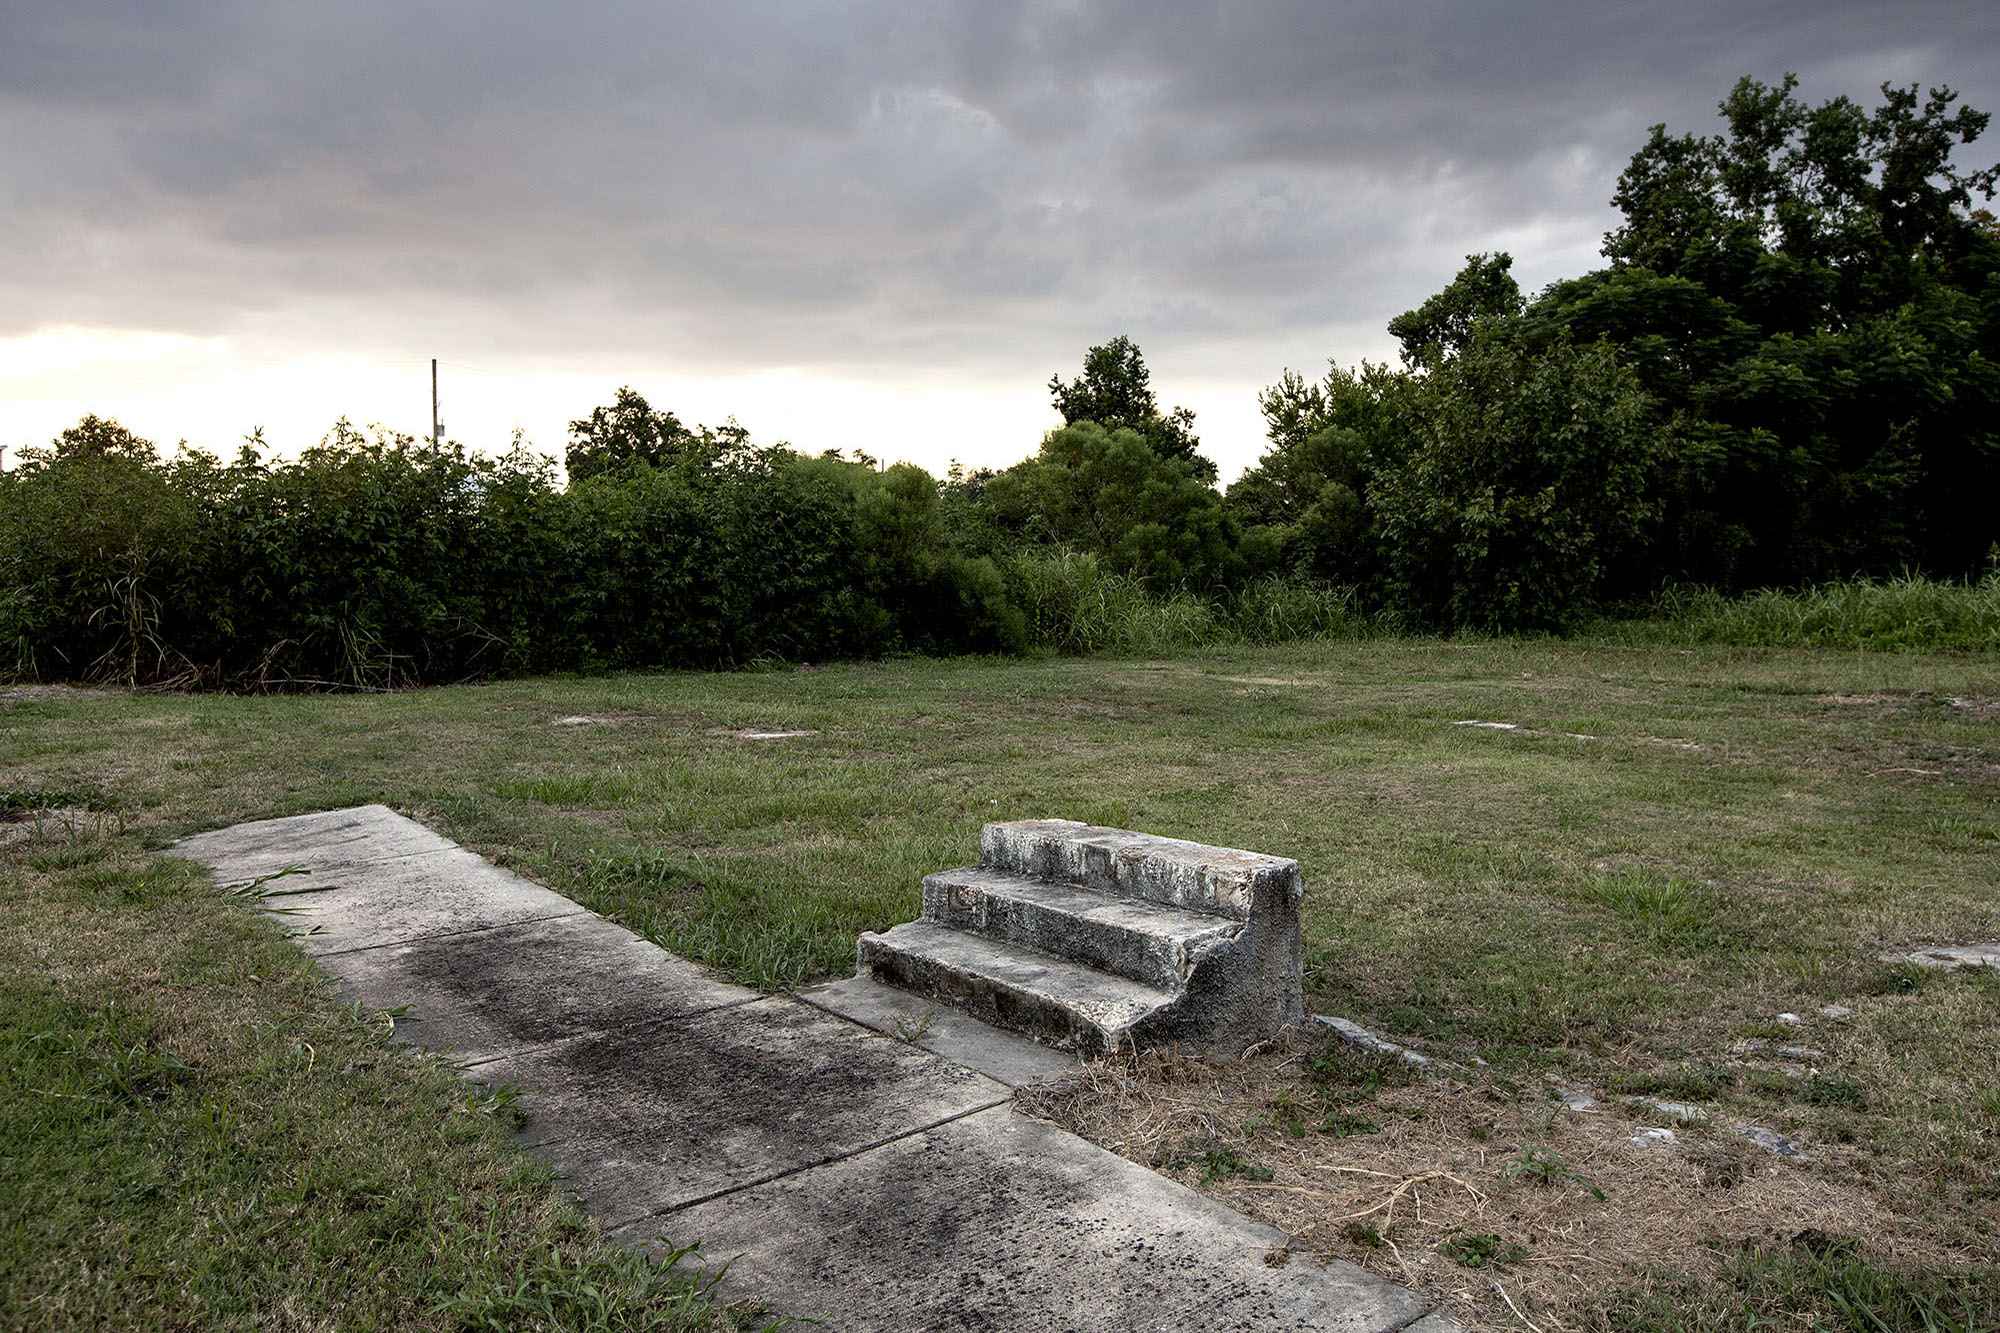 Stairs to nowhere. A common sight in the Lower Ninth Ward where over 4,000 houses where destroyed by the flooding.